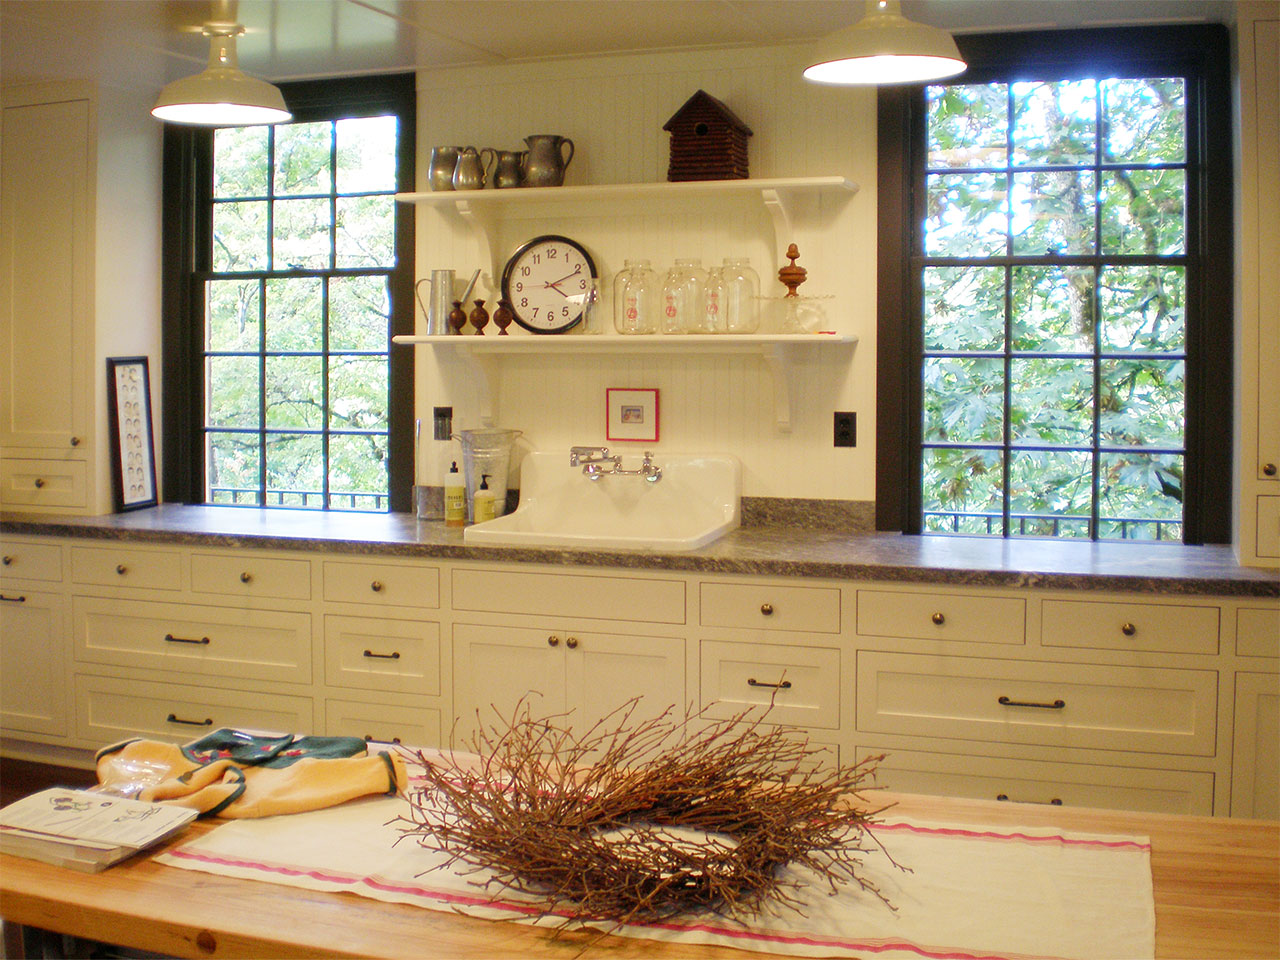 kaufman-homes-remodel-lincoln-5